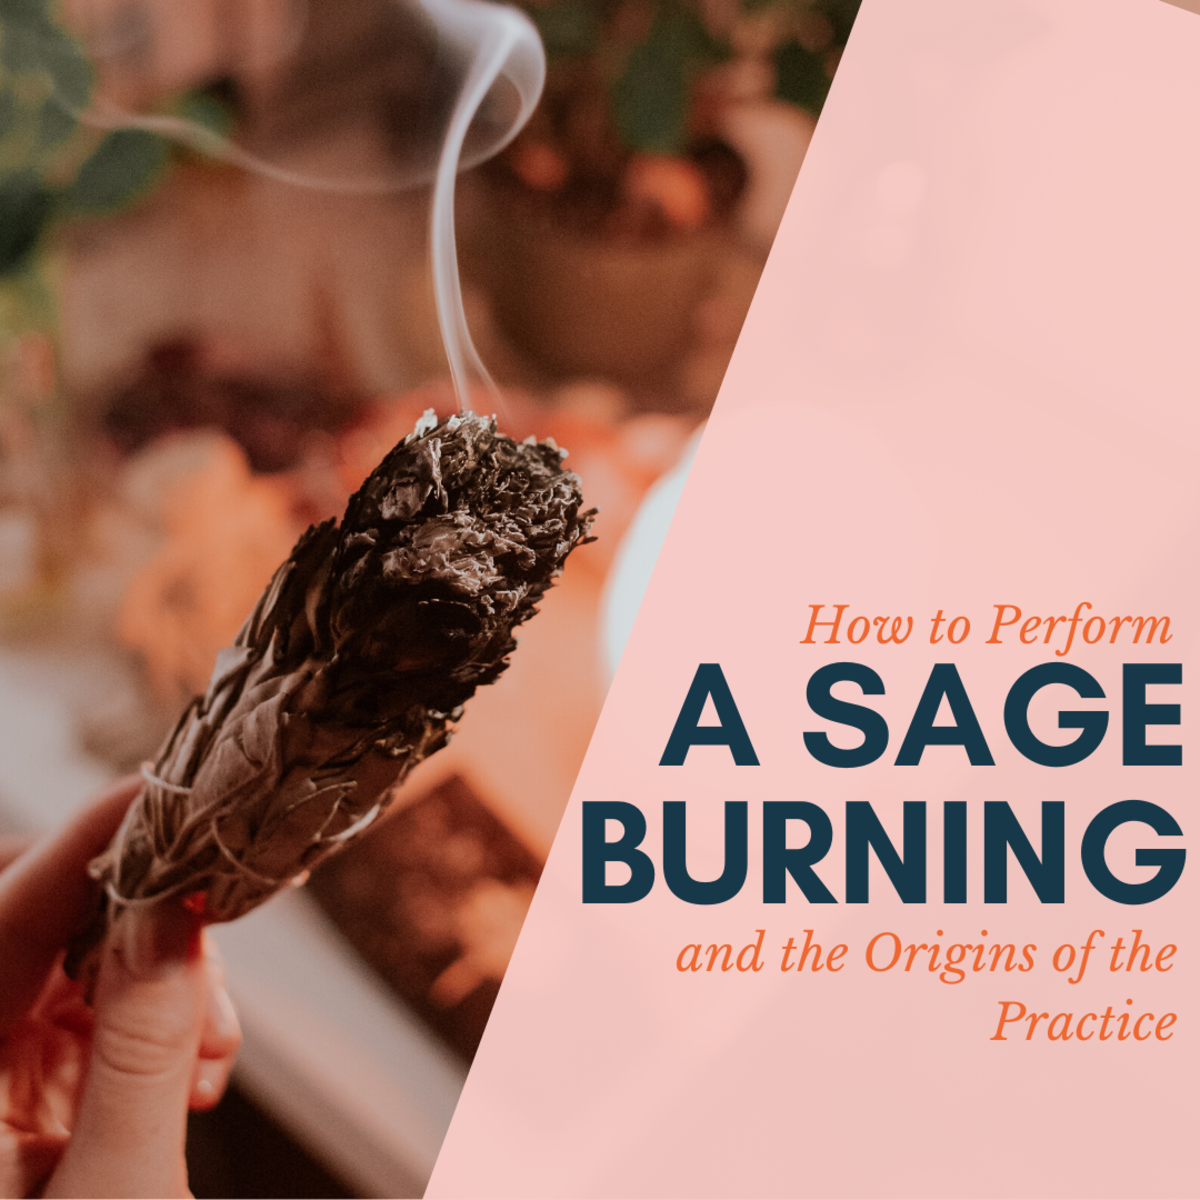 How to Perform a Sage Cleanse